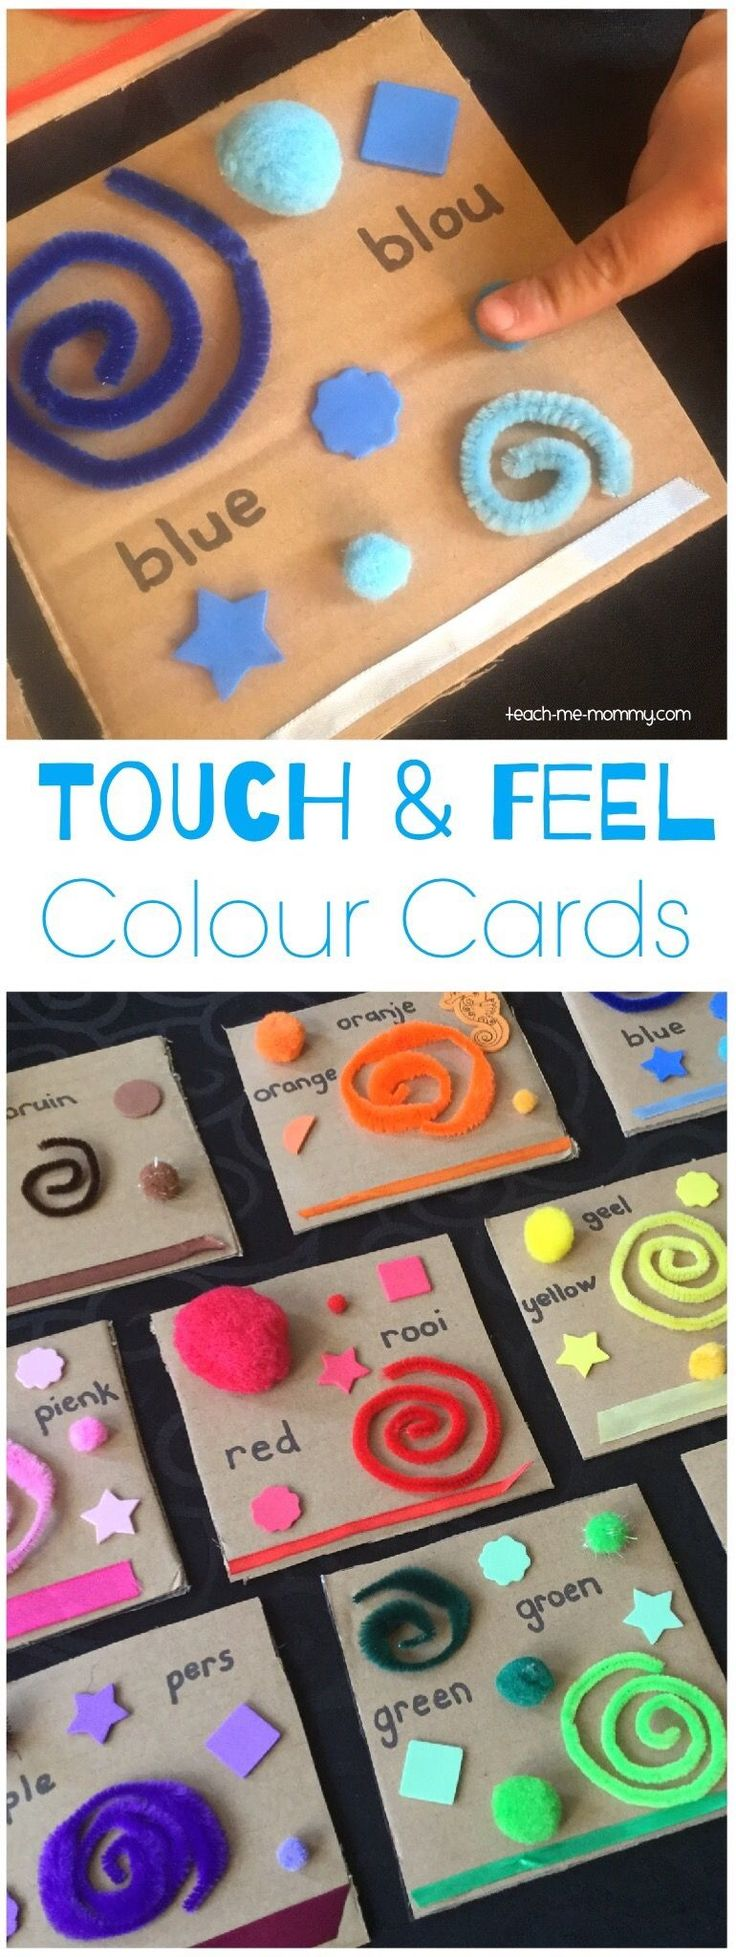 touch feel colour cards - Colour Game For Toddlers